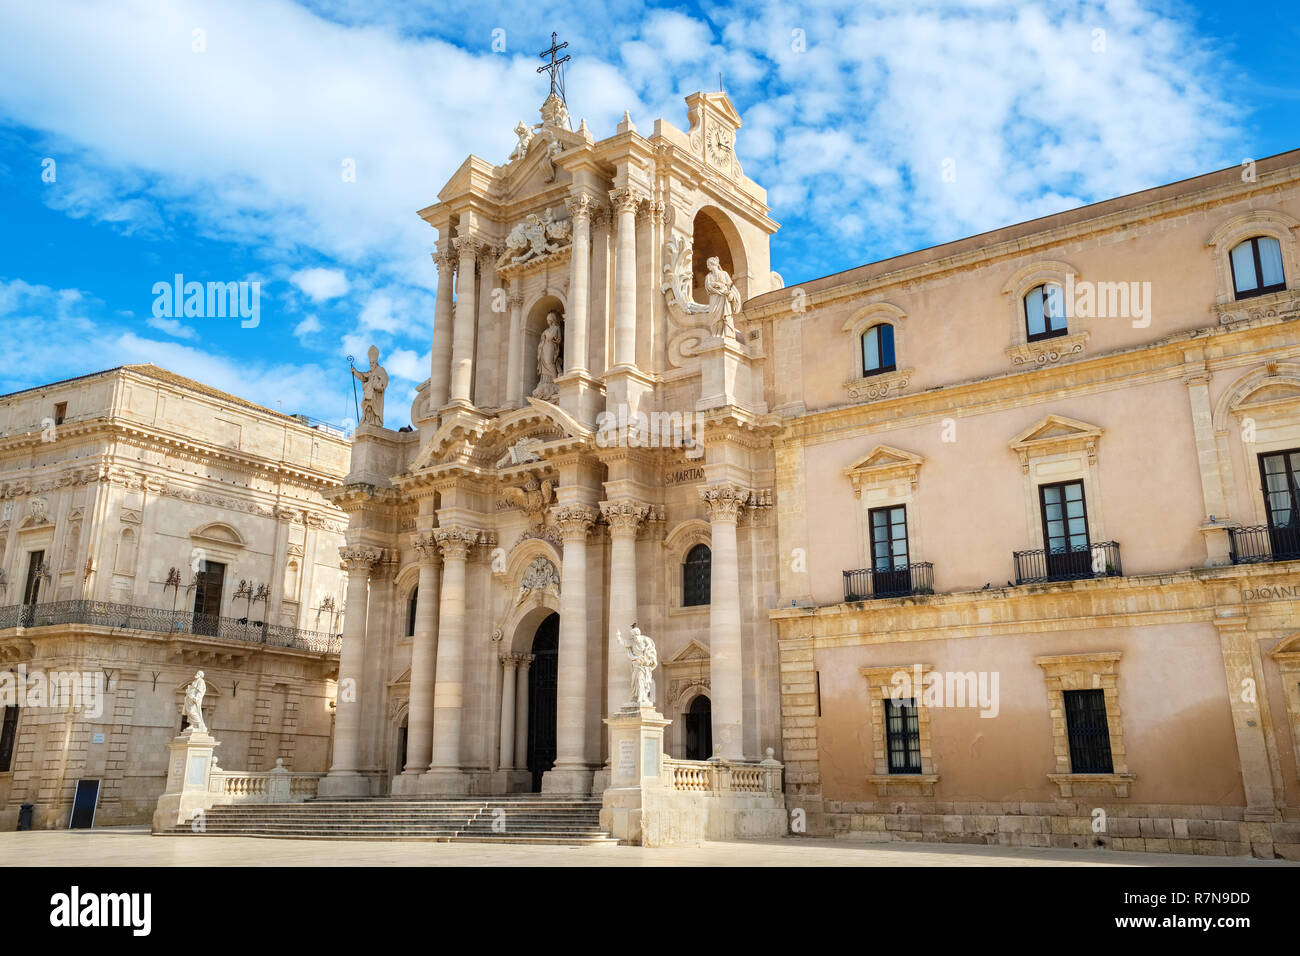 View of Cathedral of Syracuse (Duomo di Siracusa) in Piazza del Duomo. Ortygia, Syracuse (Siracusa), Sicily, Italy Stock Photo